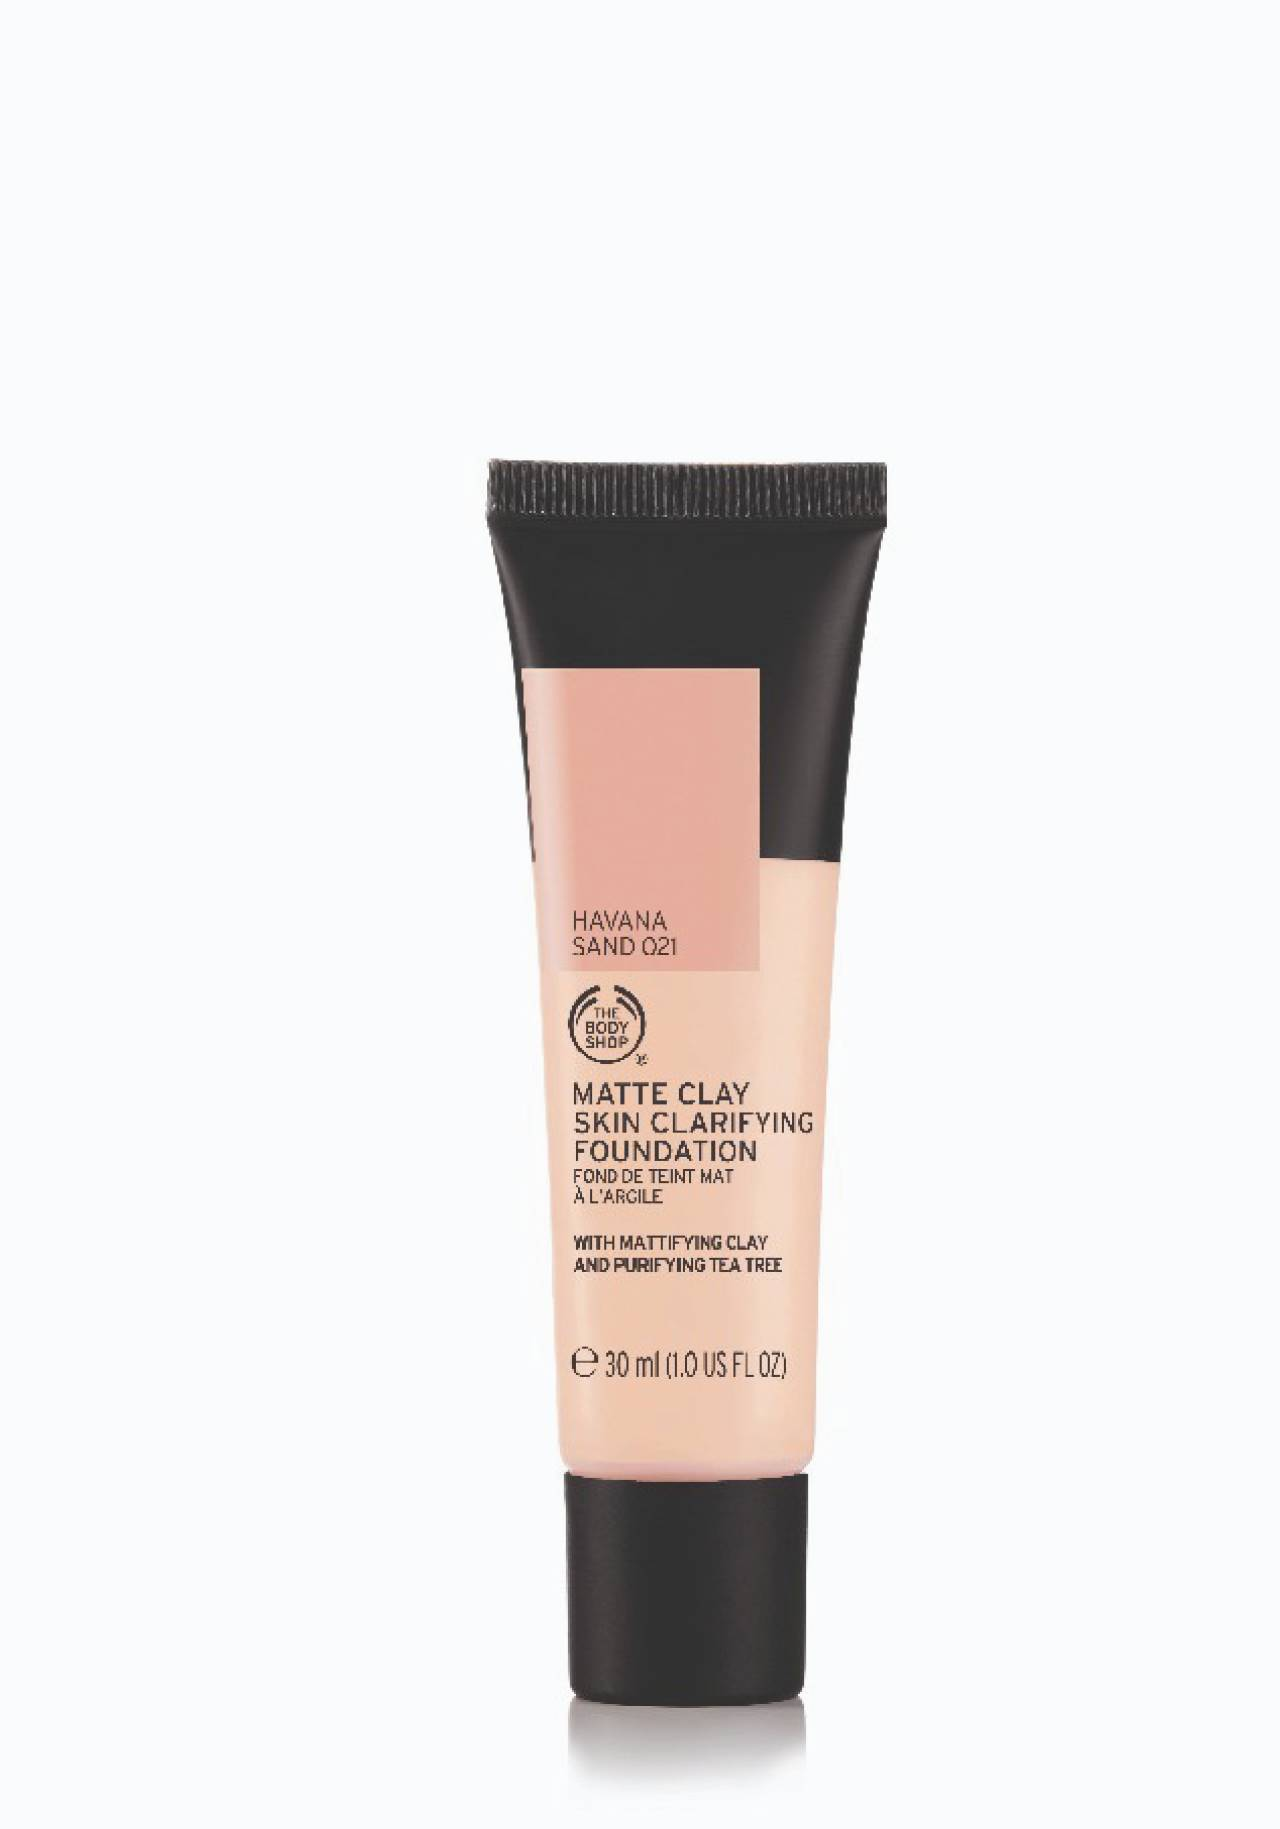 Base de maquillaje Matte Clay Skin Clarifying Foundation The Body Shop